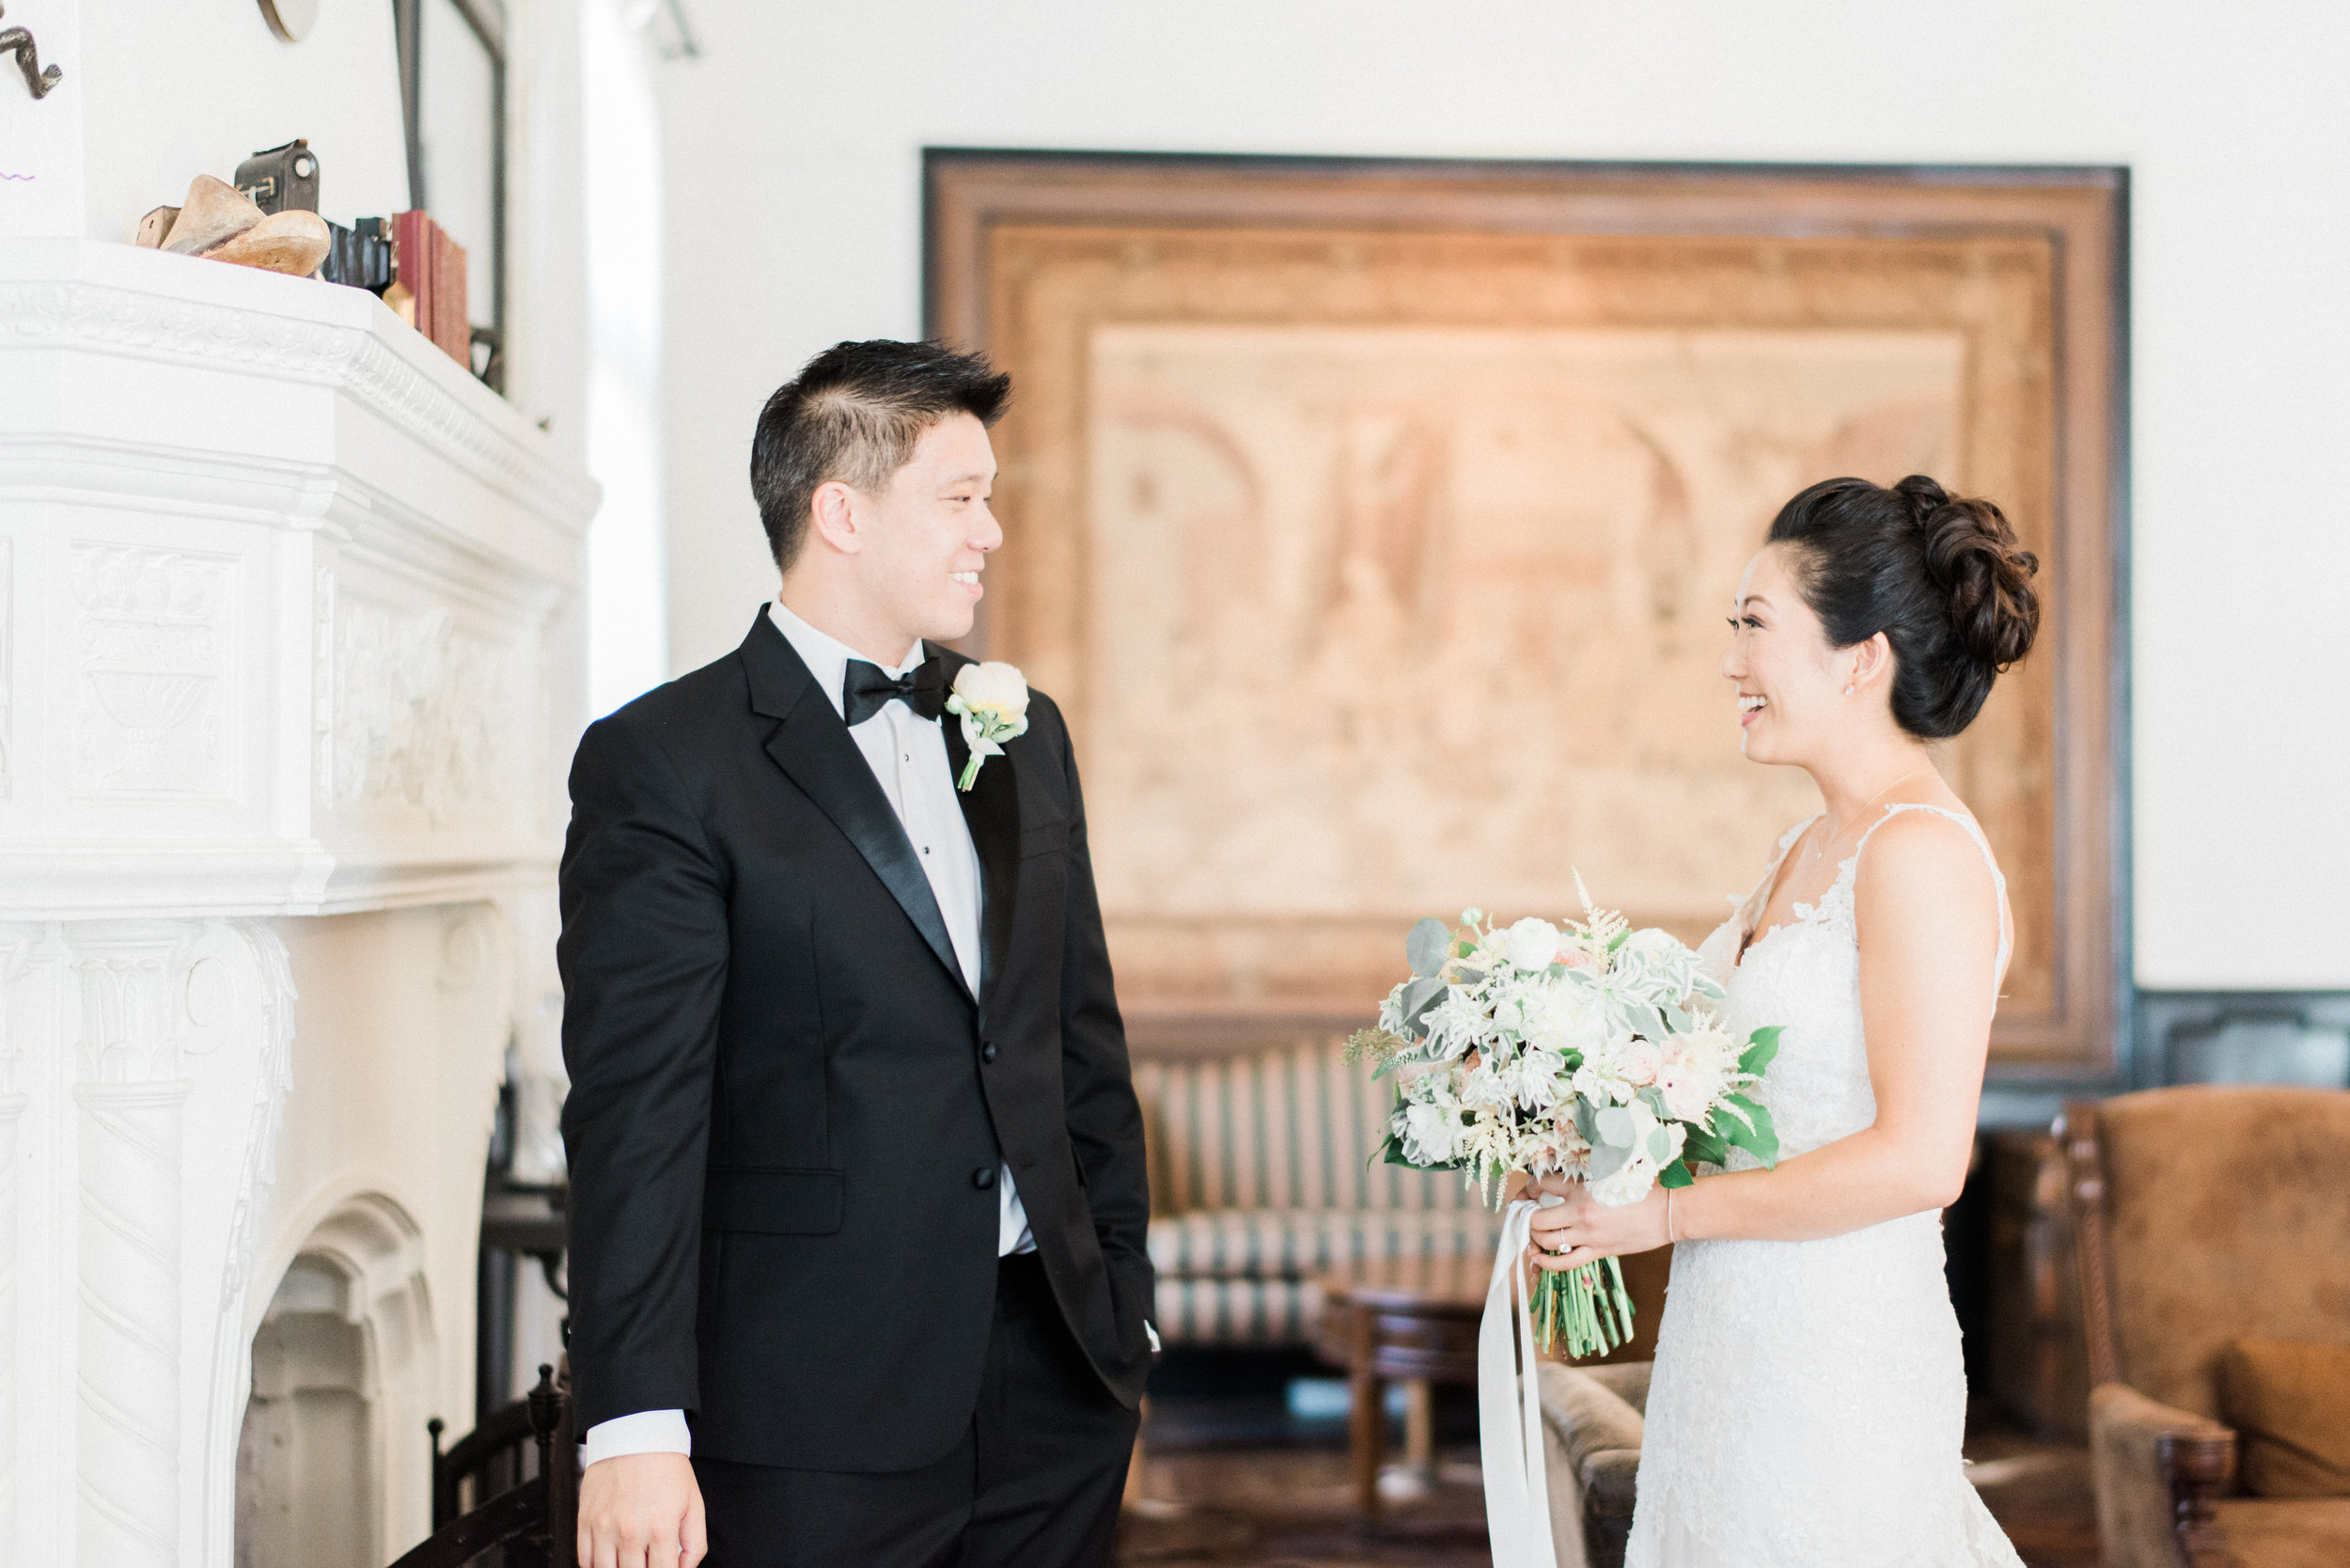 Lori & Justin - Image by Ether & SmithCoordination + Florals by Rekindle